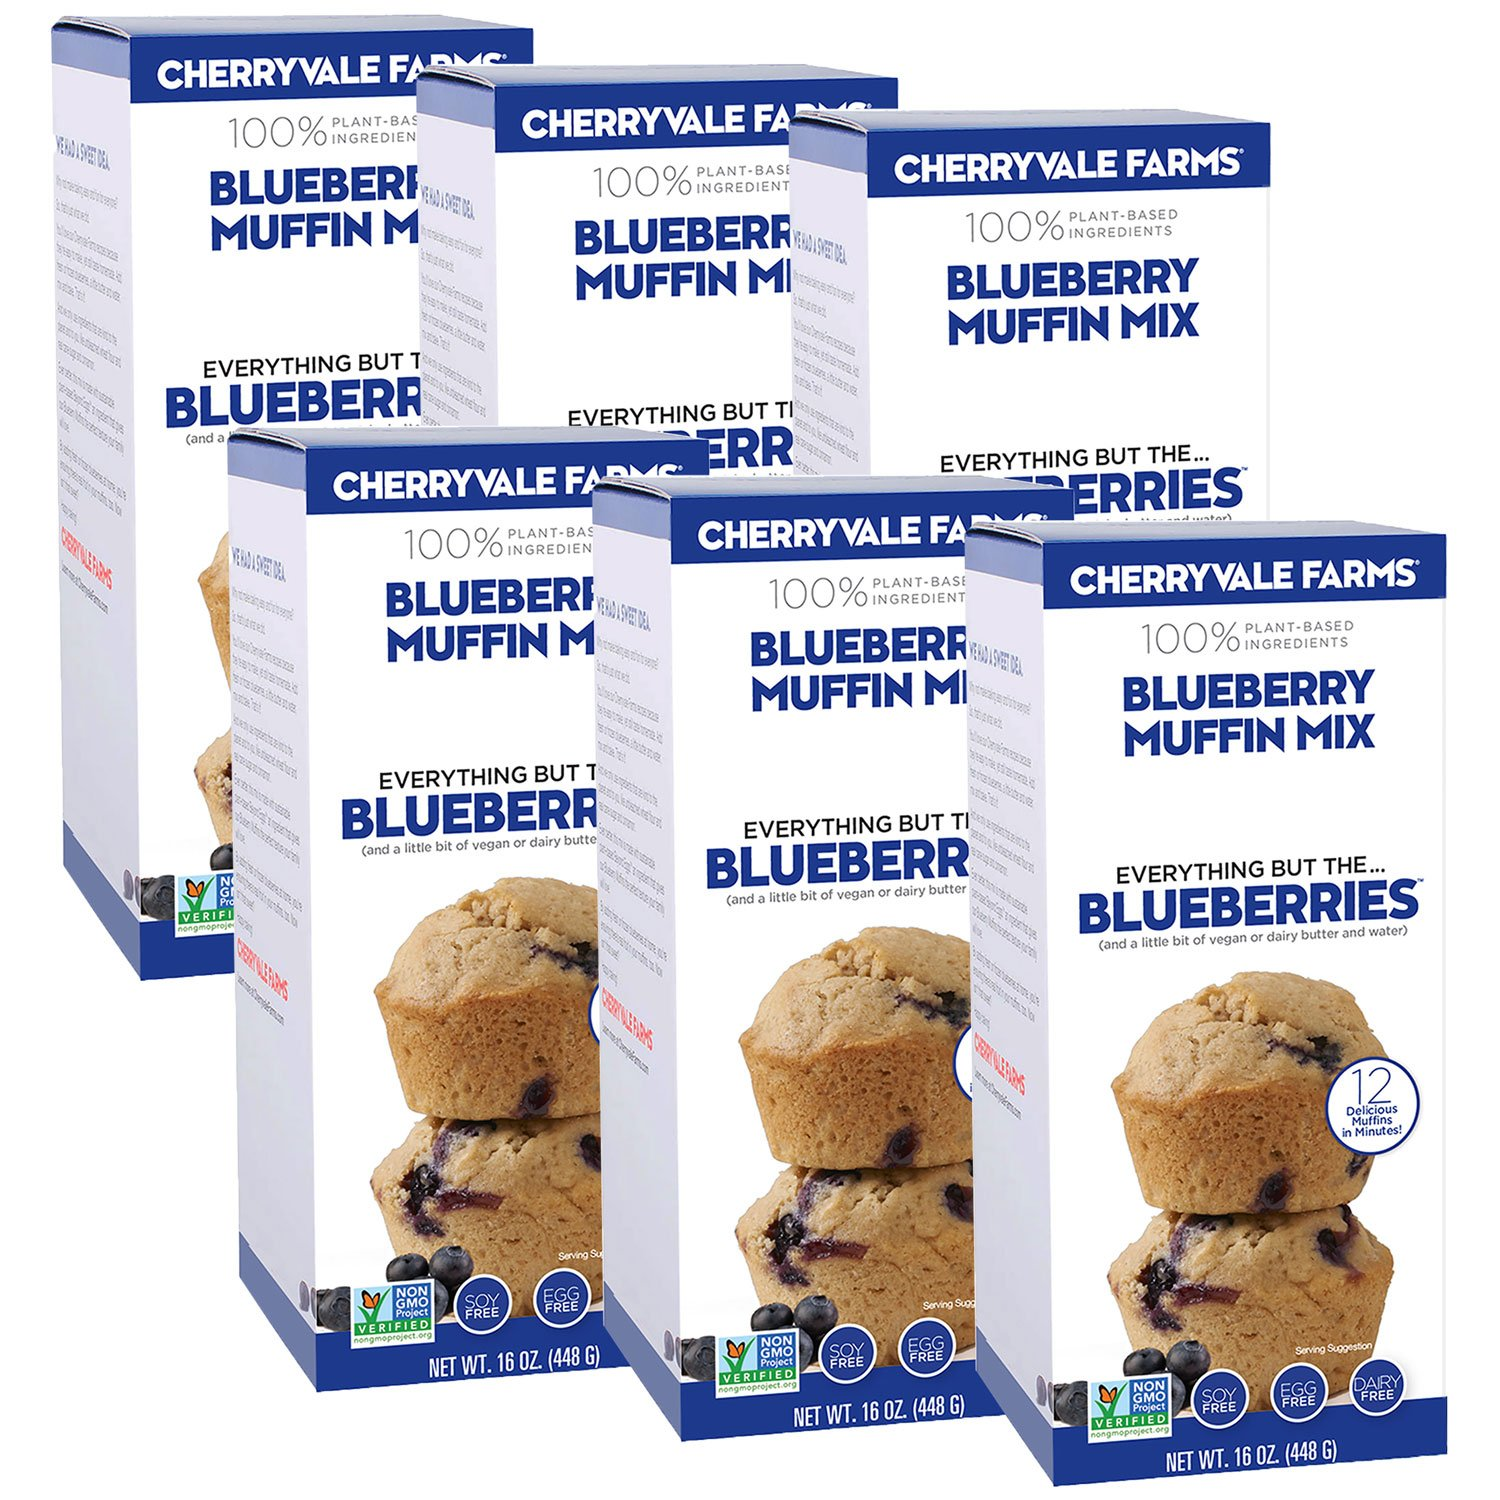 Cherryvale Farms, Blueberry Muffin Baking Mix, Everything But The Blueberries, Add Fresh Produce, Tastes Homemade, Non-GMO, Vegan, 100% Plant-Based, 16 oz (pack of 6) by CHERRYVALE FARMS (Image #1)